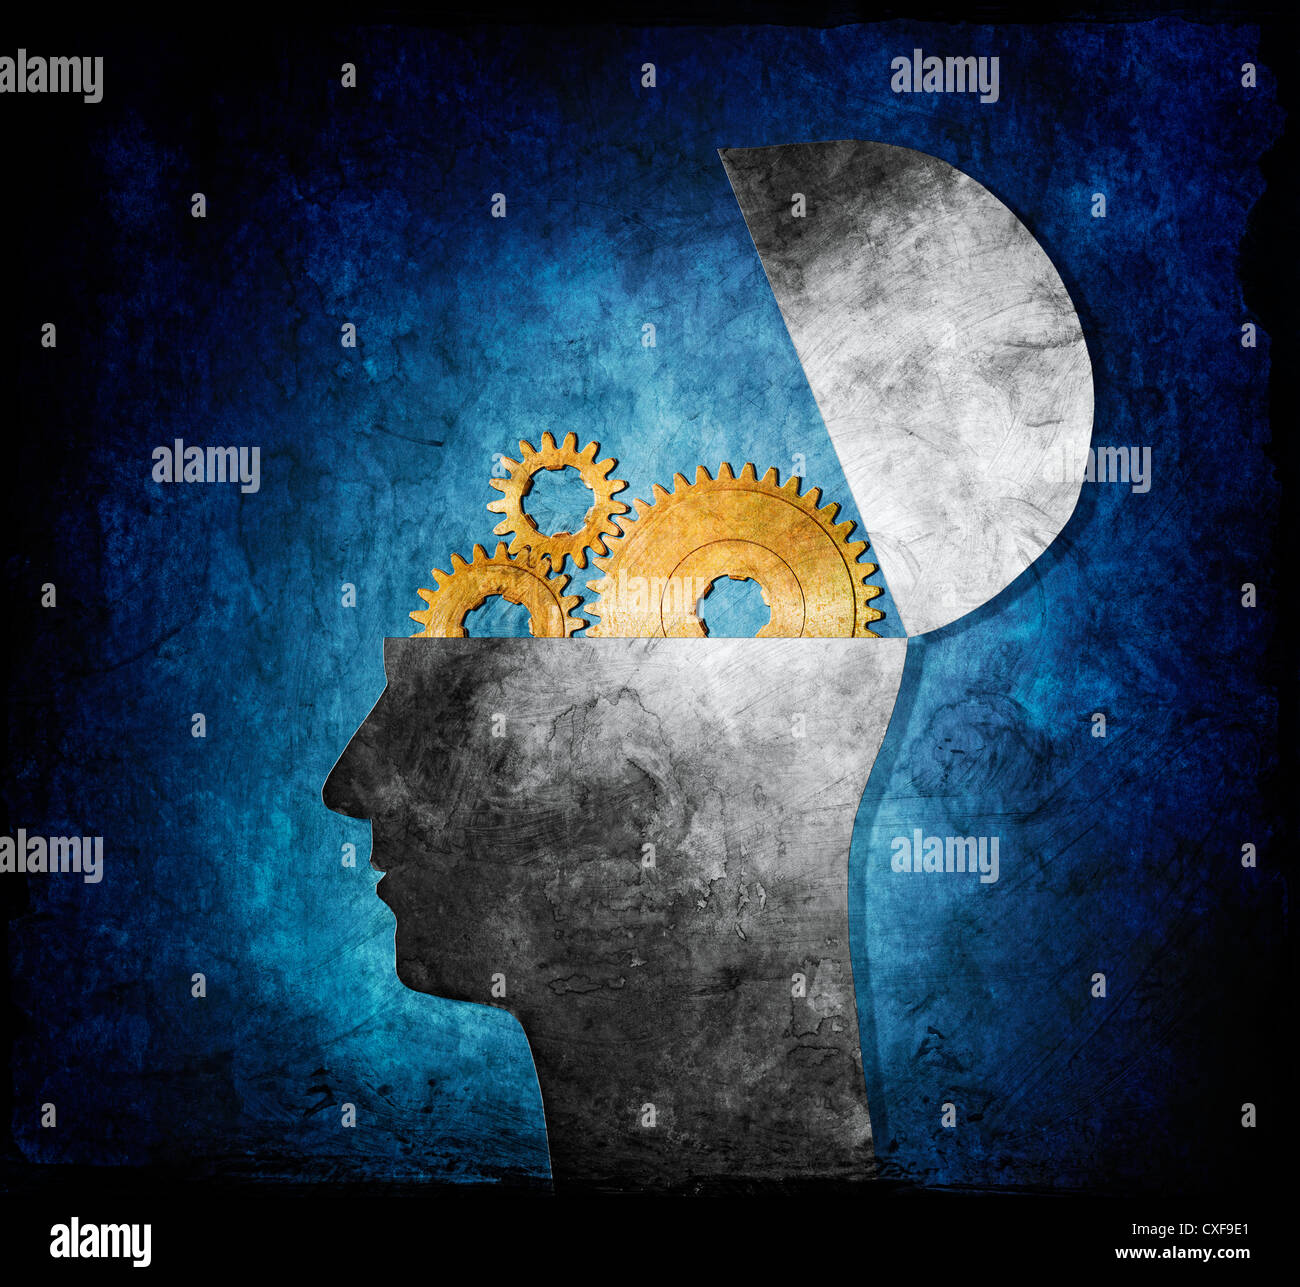 Raster collage illustration of an opened head with cog gears. - Stock Image